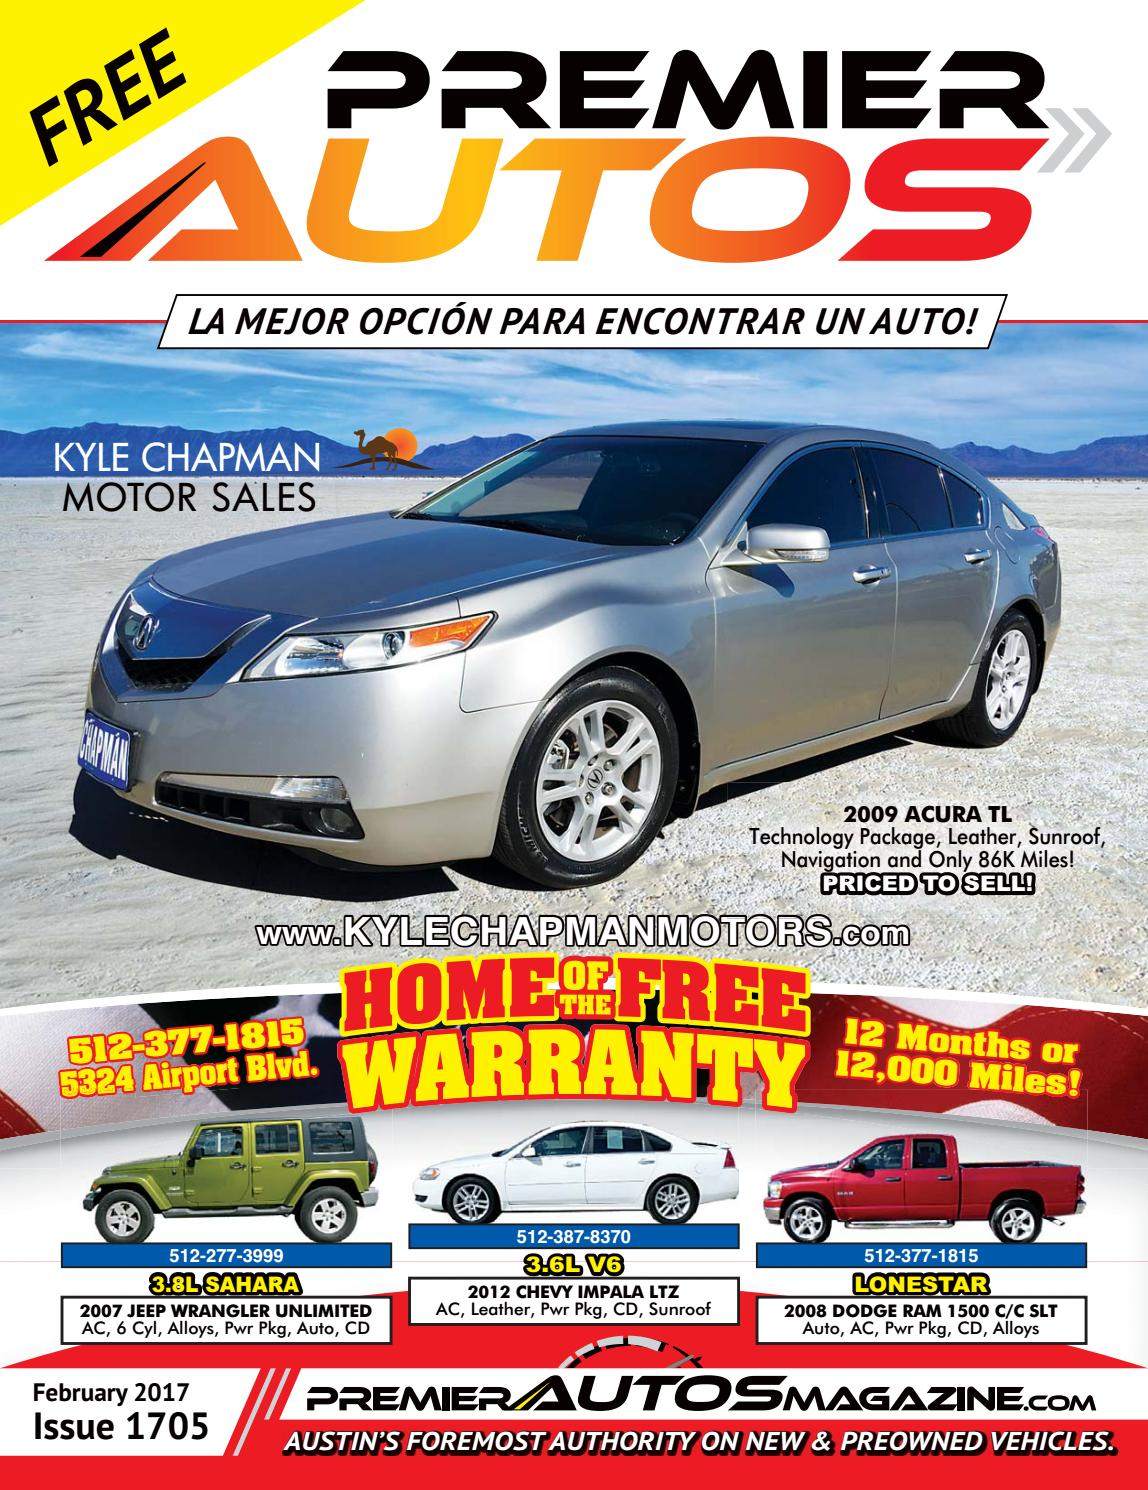 2005 Acura Tsx Luxury Premier Autos by Digital Publisher issuu